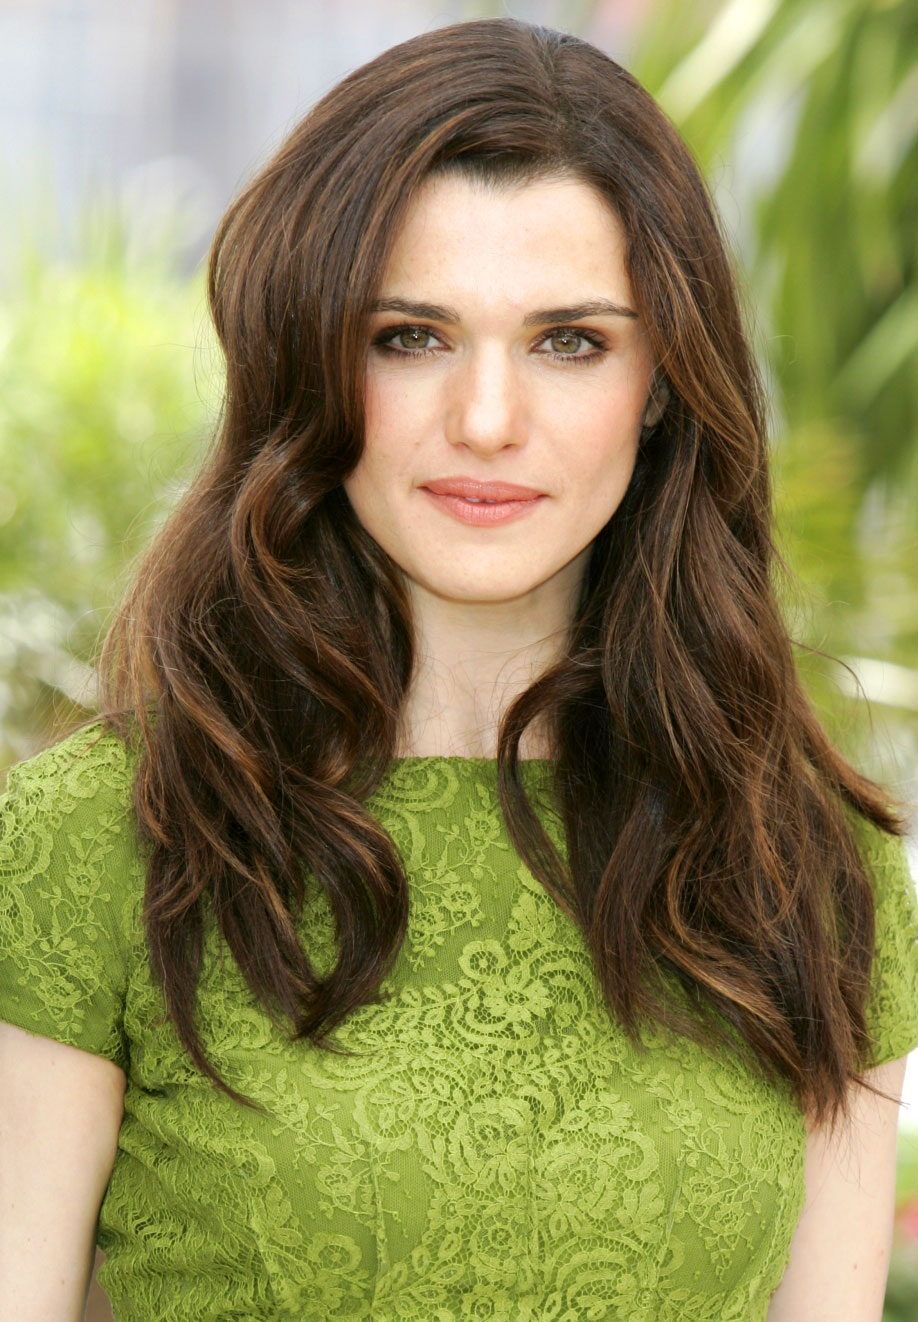 Rachel Weisz Wallpapers Gotceleb Wallpapers 918x1322